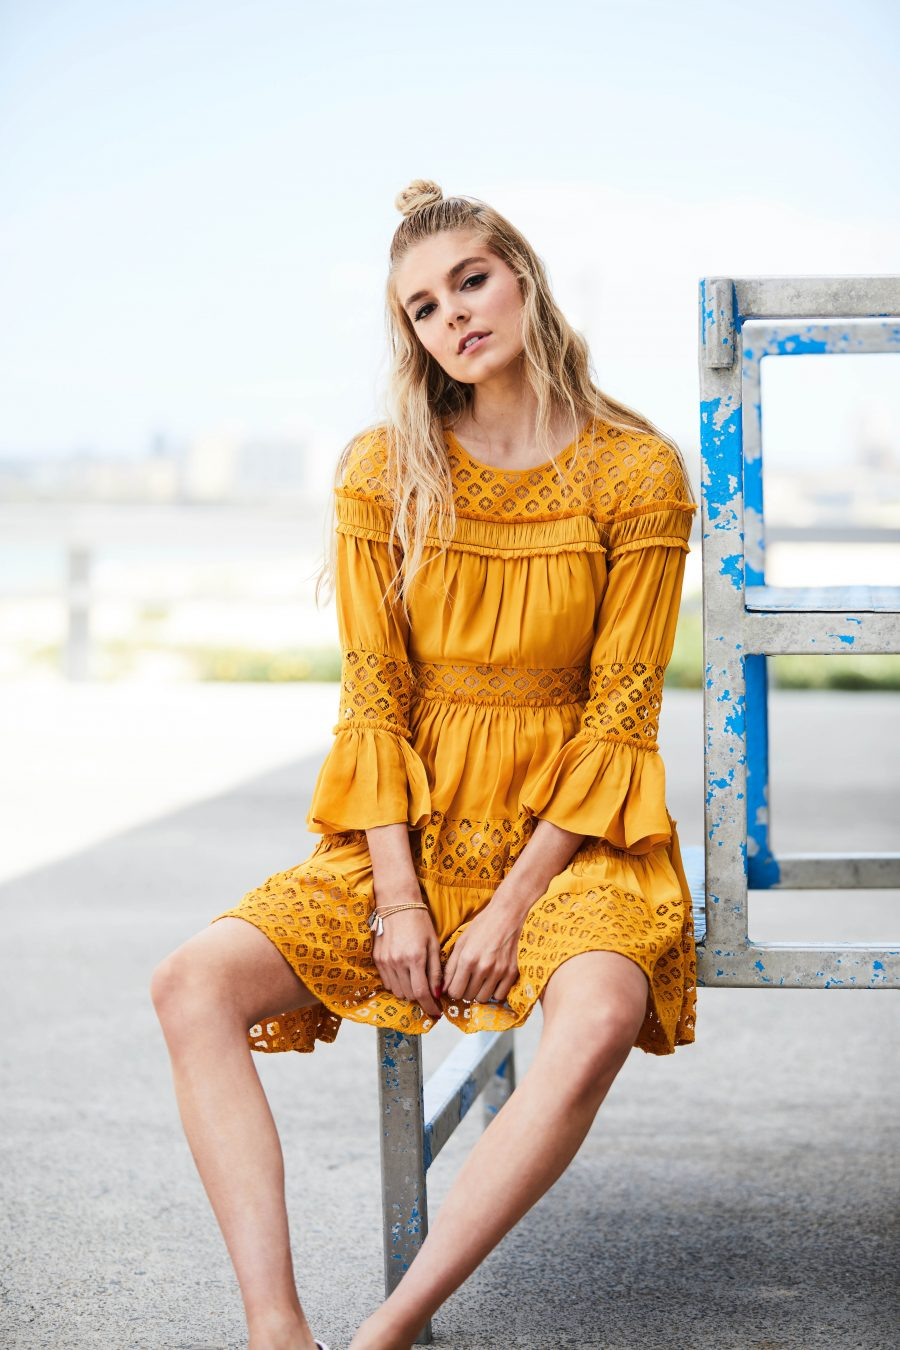 See Need Want Fashion Summer Street Style Trends Colour Yellow Pretty Dress 5